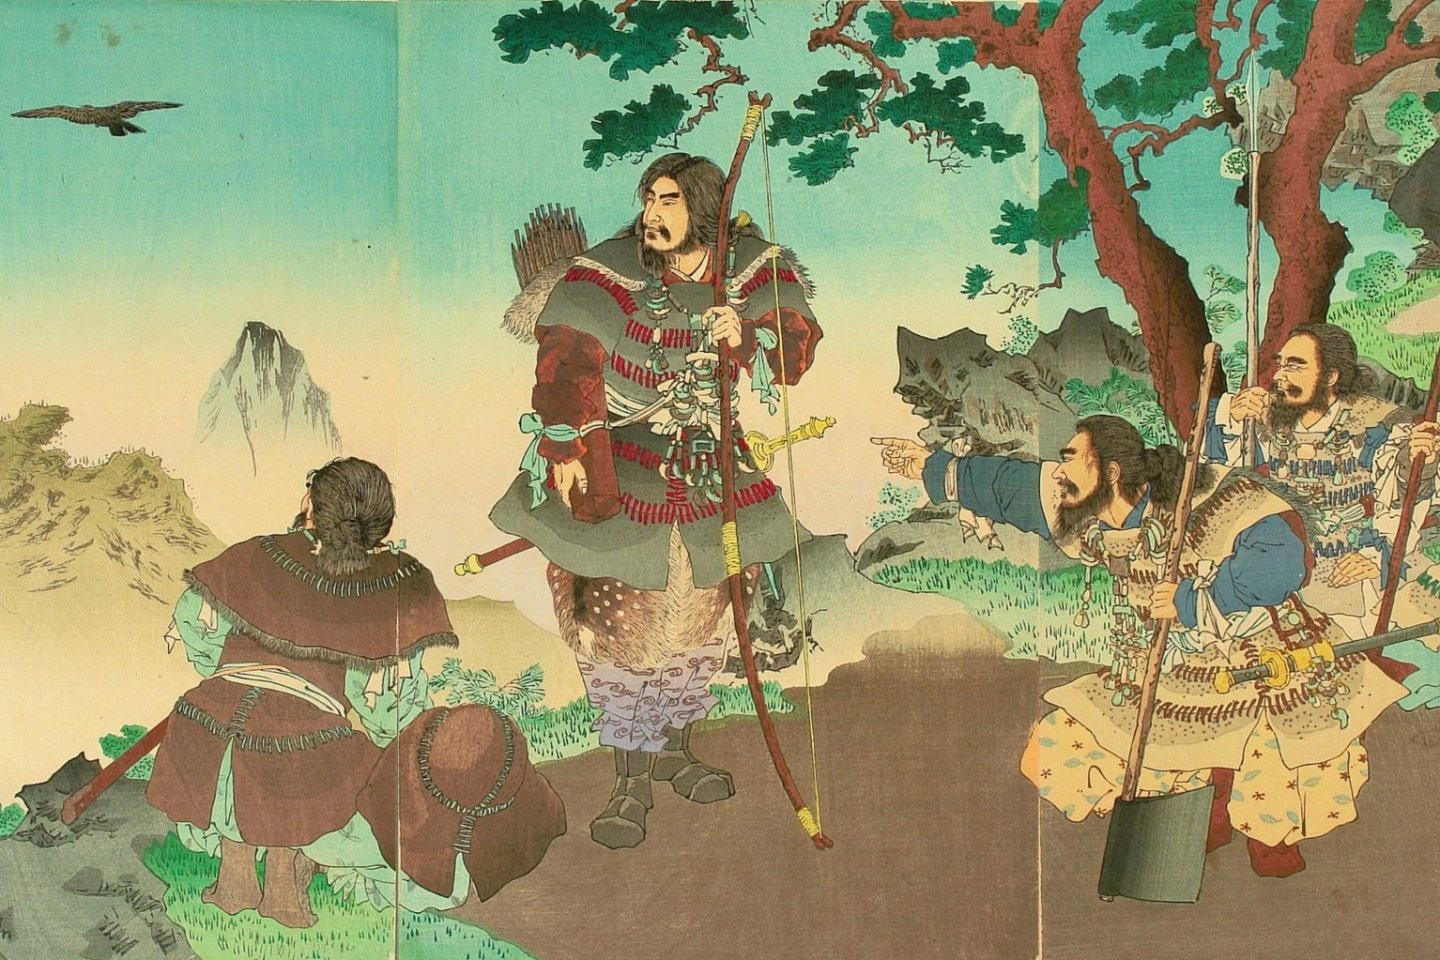 Emperor Jimmu and his company following the Yatagarasu